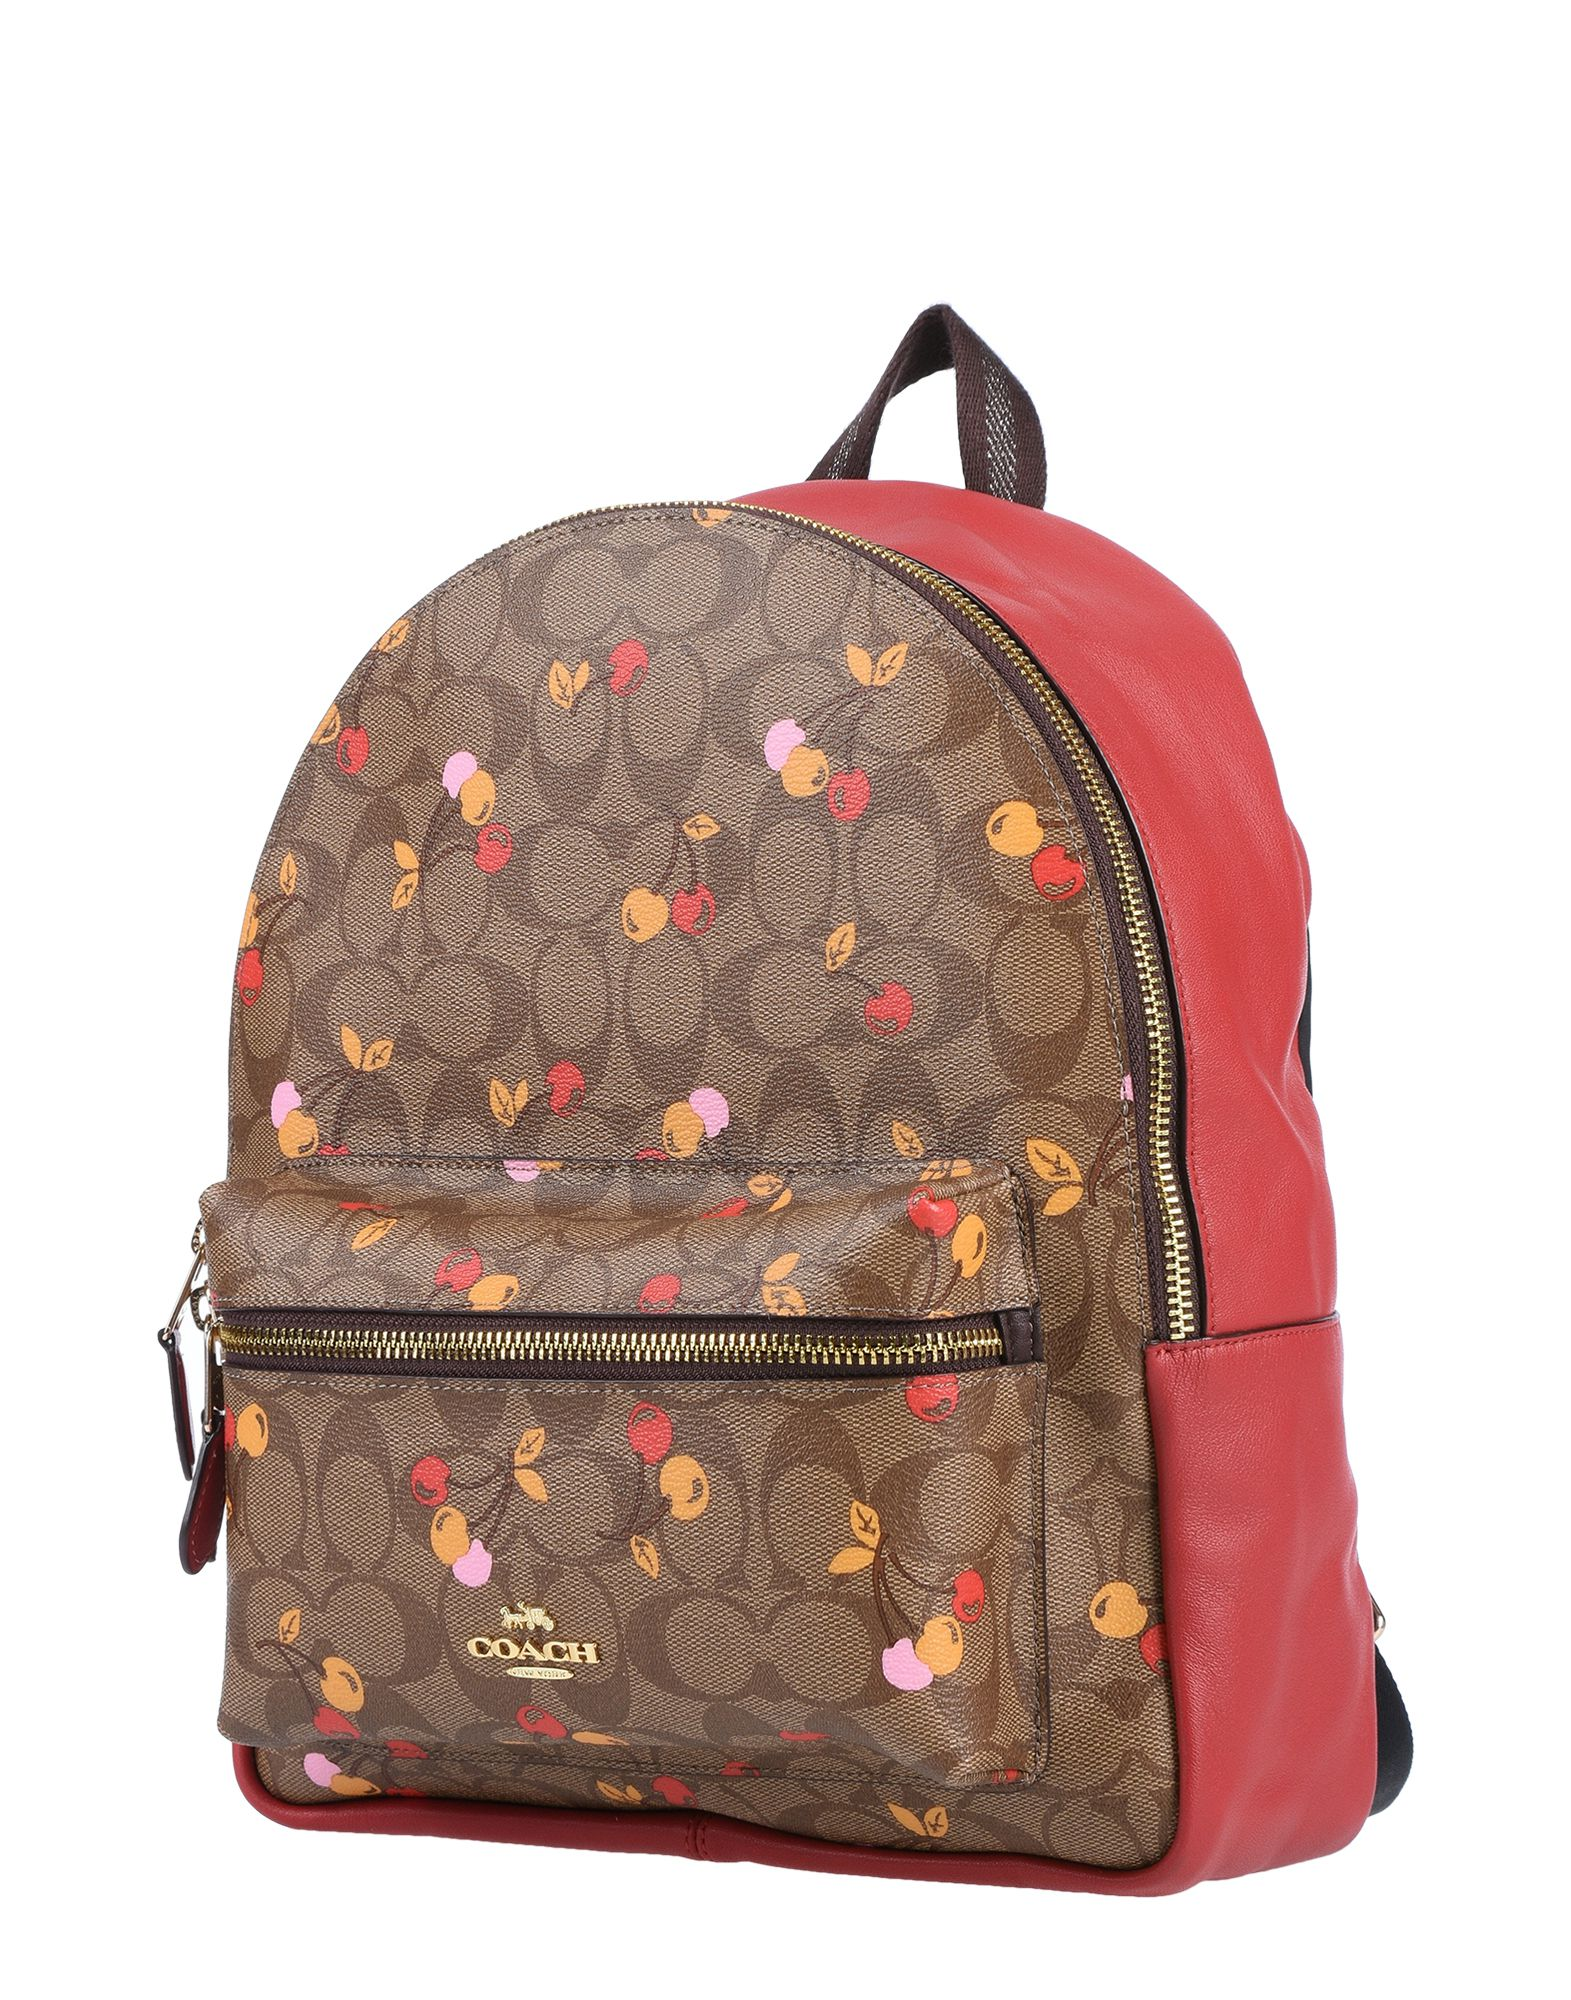 COACH Backpacks & Fanny packs. medium, logo, multicolor pattern, zip, external pockets, internal zip pocket, bag handle, fully lined, contains non-textile parts of animal origin. Soft Leather